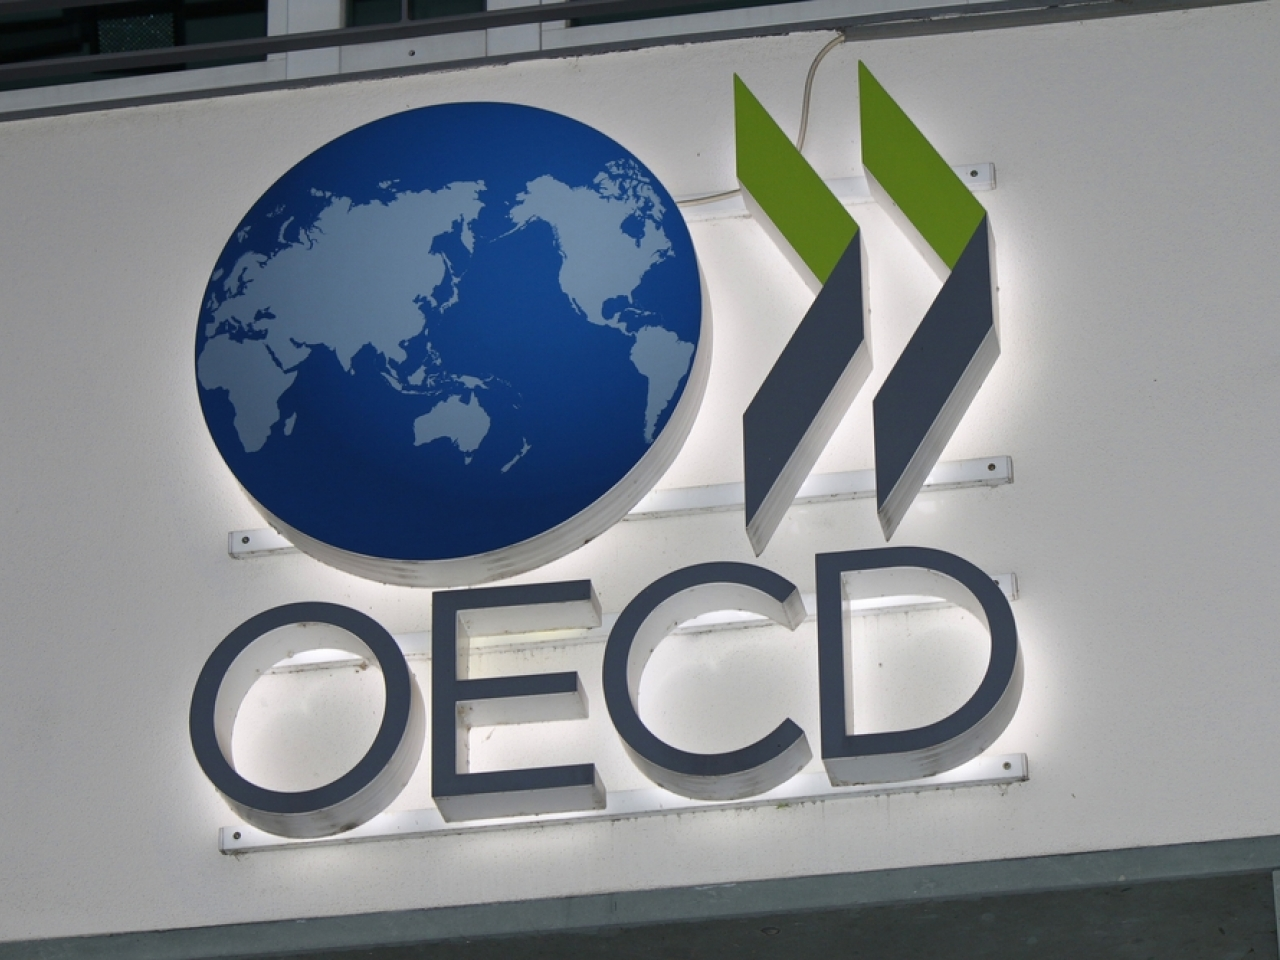 The OECD said four countries - Kenya, Nigeria, Pakistan and Sri Lanka - had not yet joined the agreement. Photo: Shutterstock